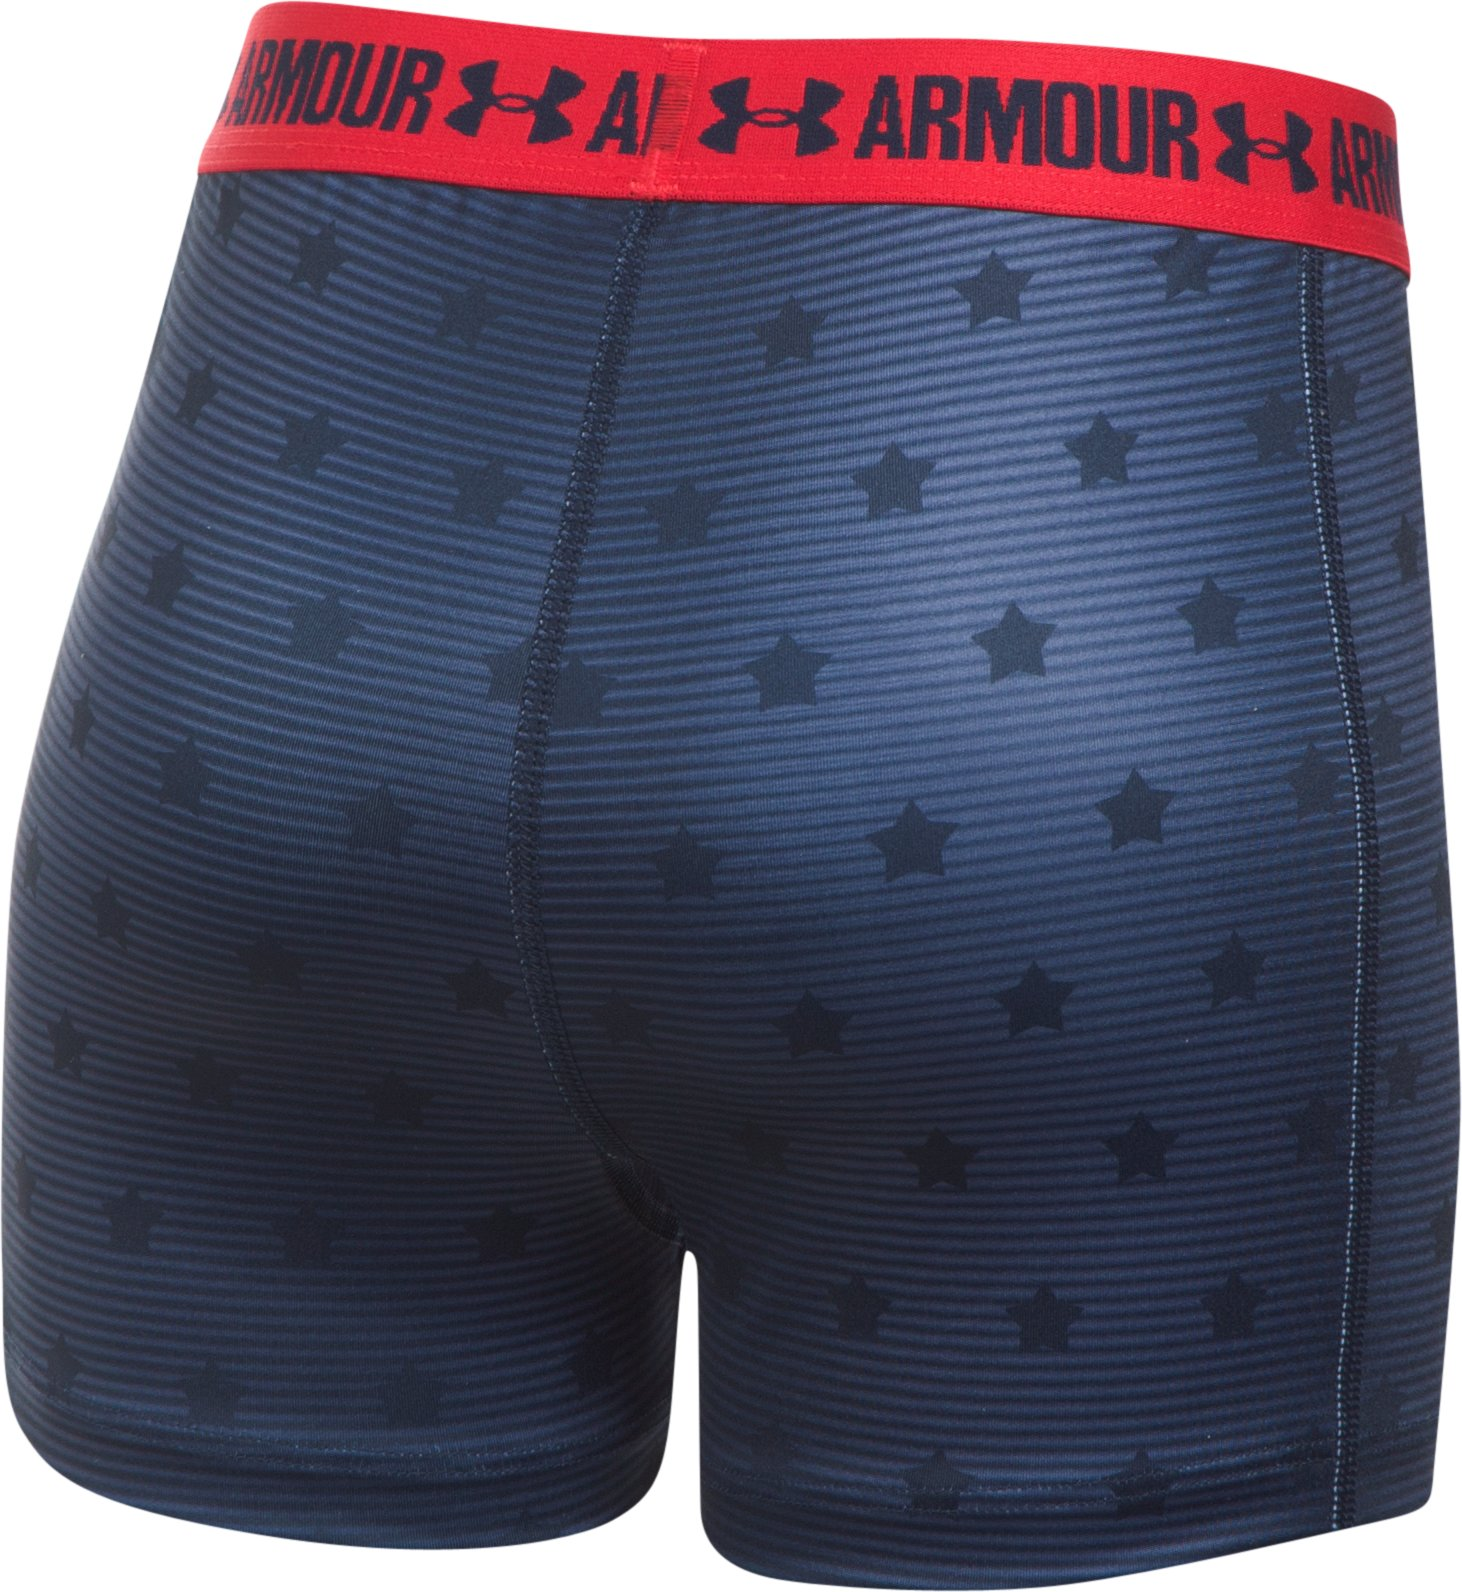 Girls' Under Armour® Alter Ego Wonder Woman Armour® Shorty, Midnight Navy, undefined